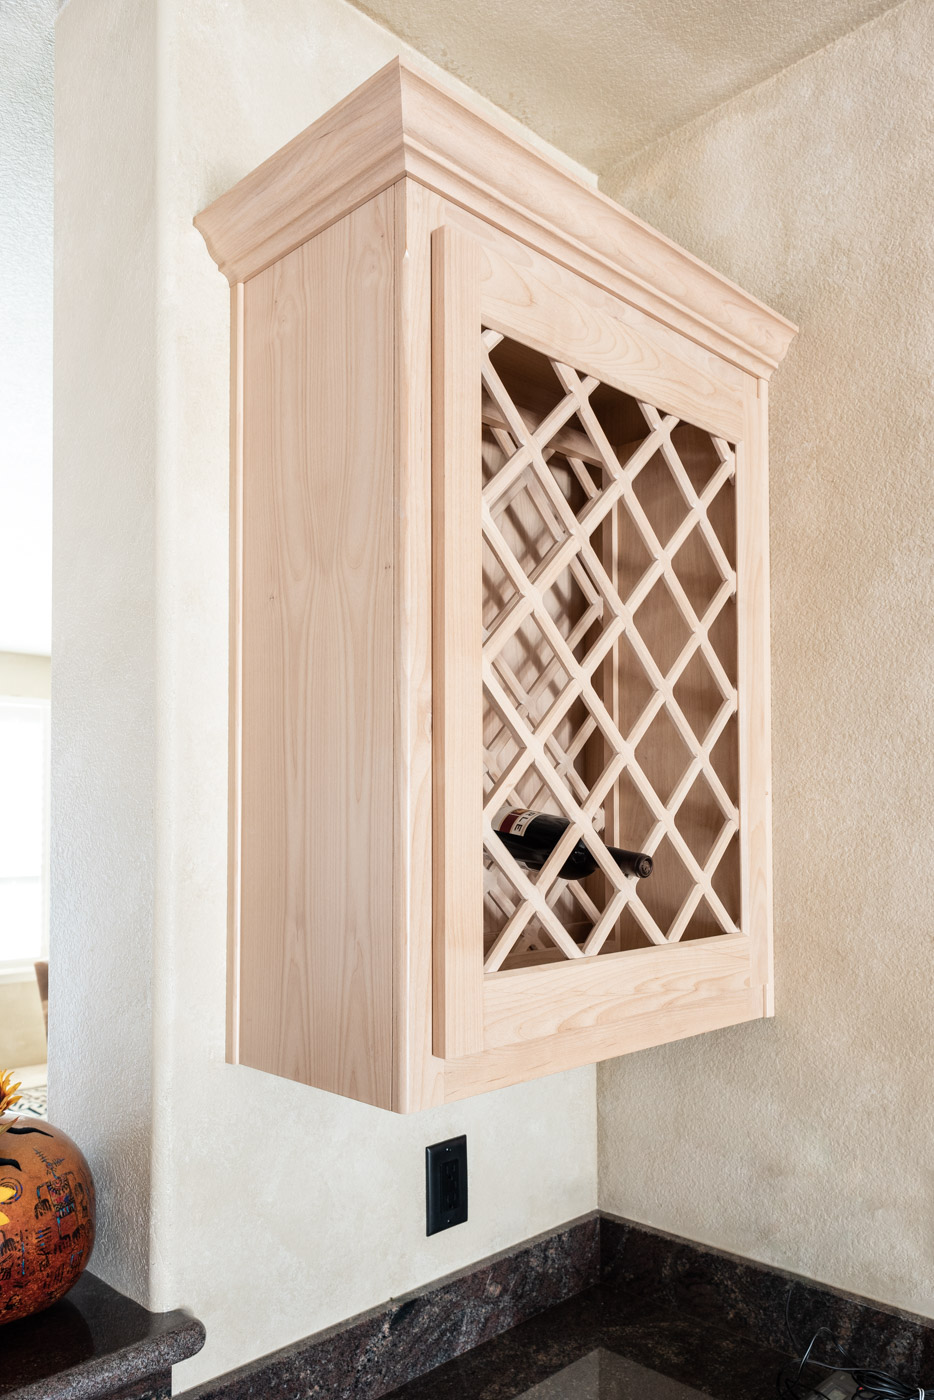 Simple Southwestern custom kitchen cabinets in white washed wood stain with custom wine rack storage